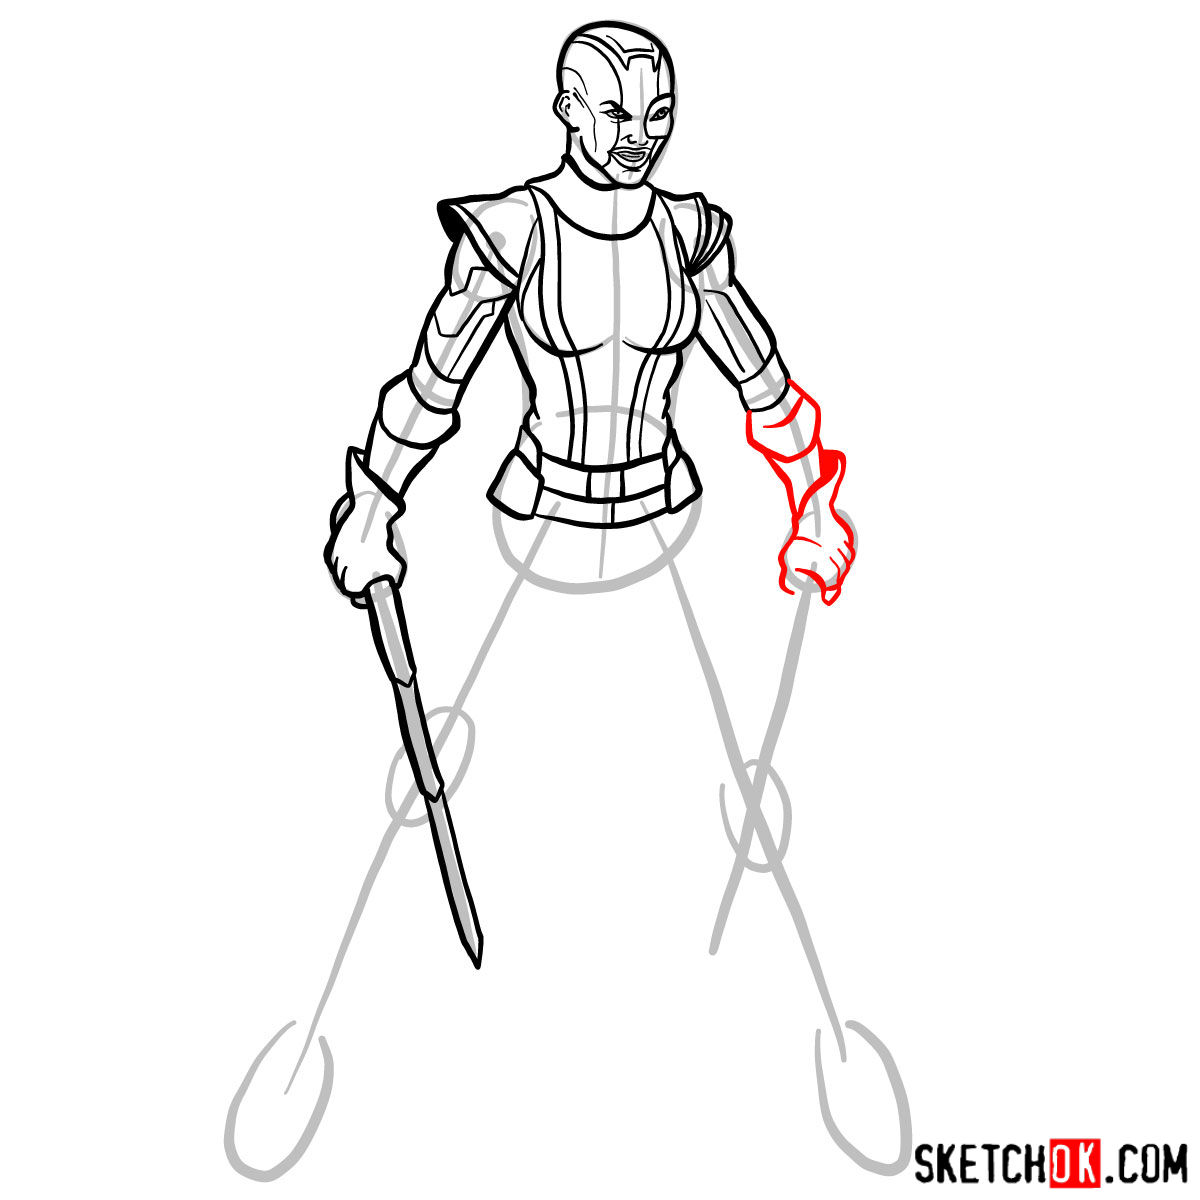 How to draw Nebula from Guardians of the Galaxy - step 12